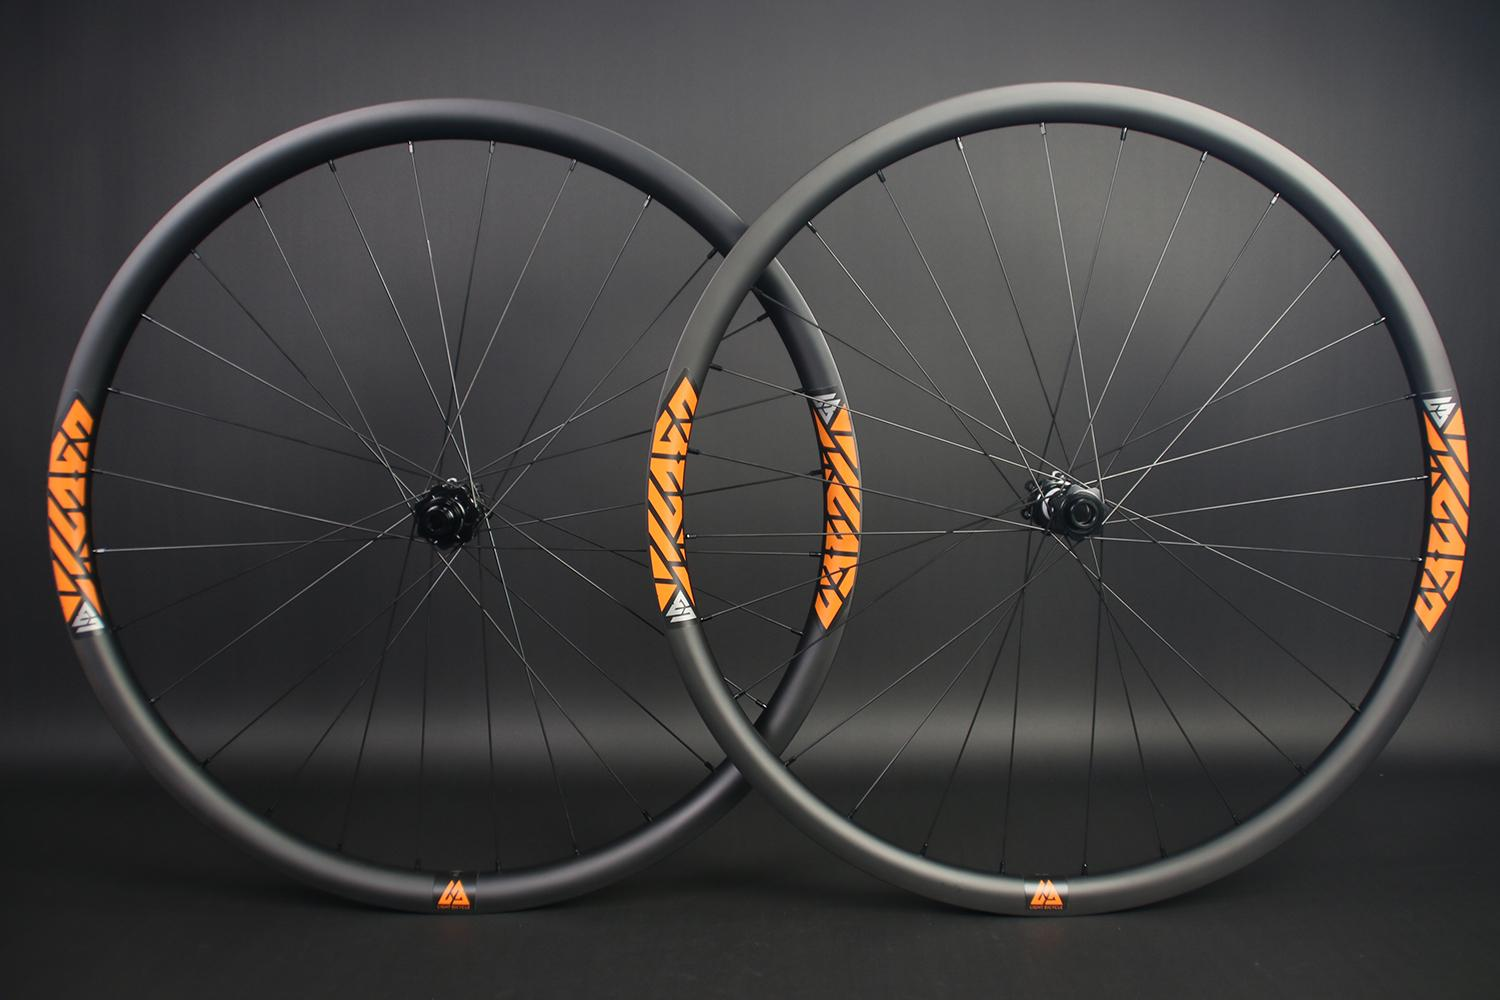 am928-29er-dt-swiss-350-boost-carbon-wheelset-with-orange-stickers